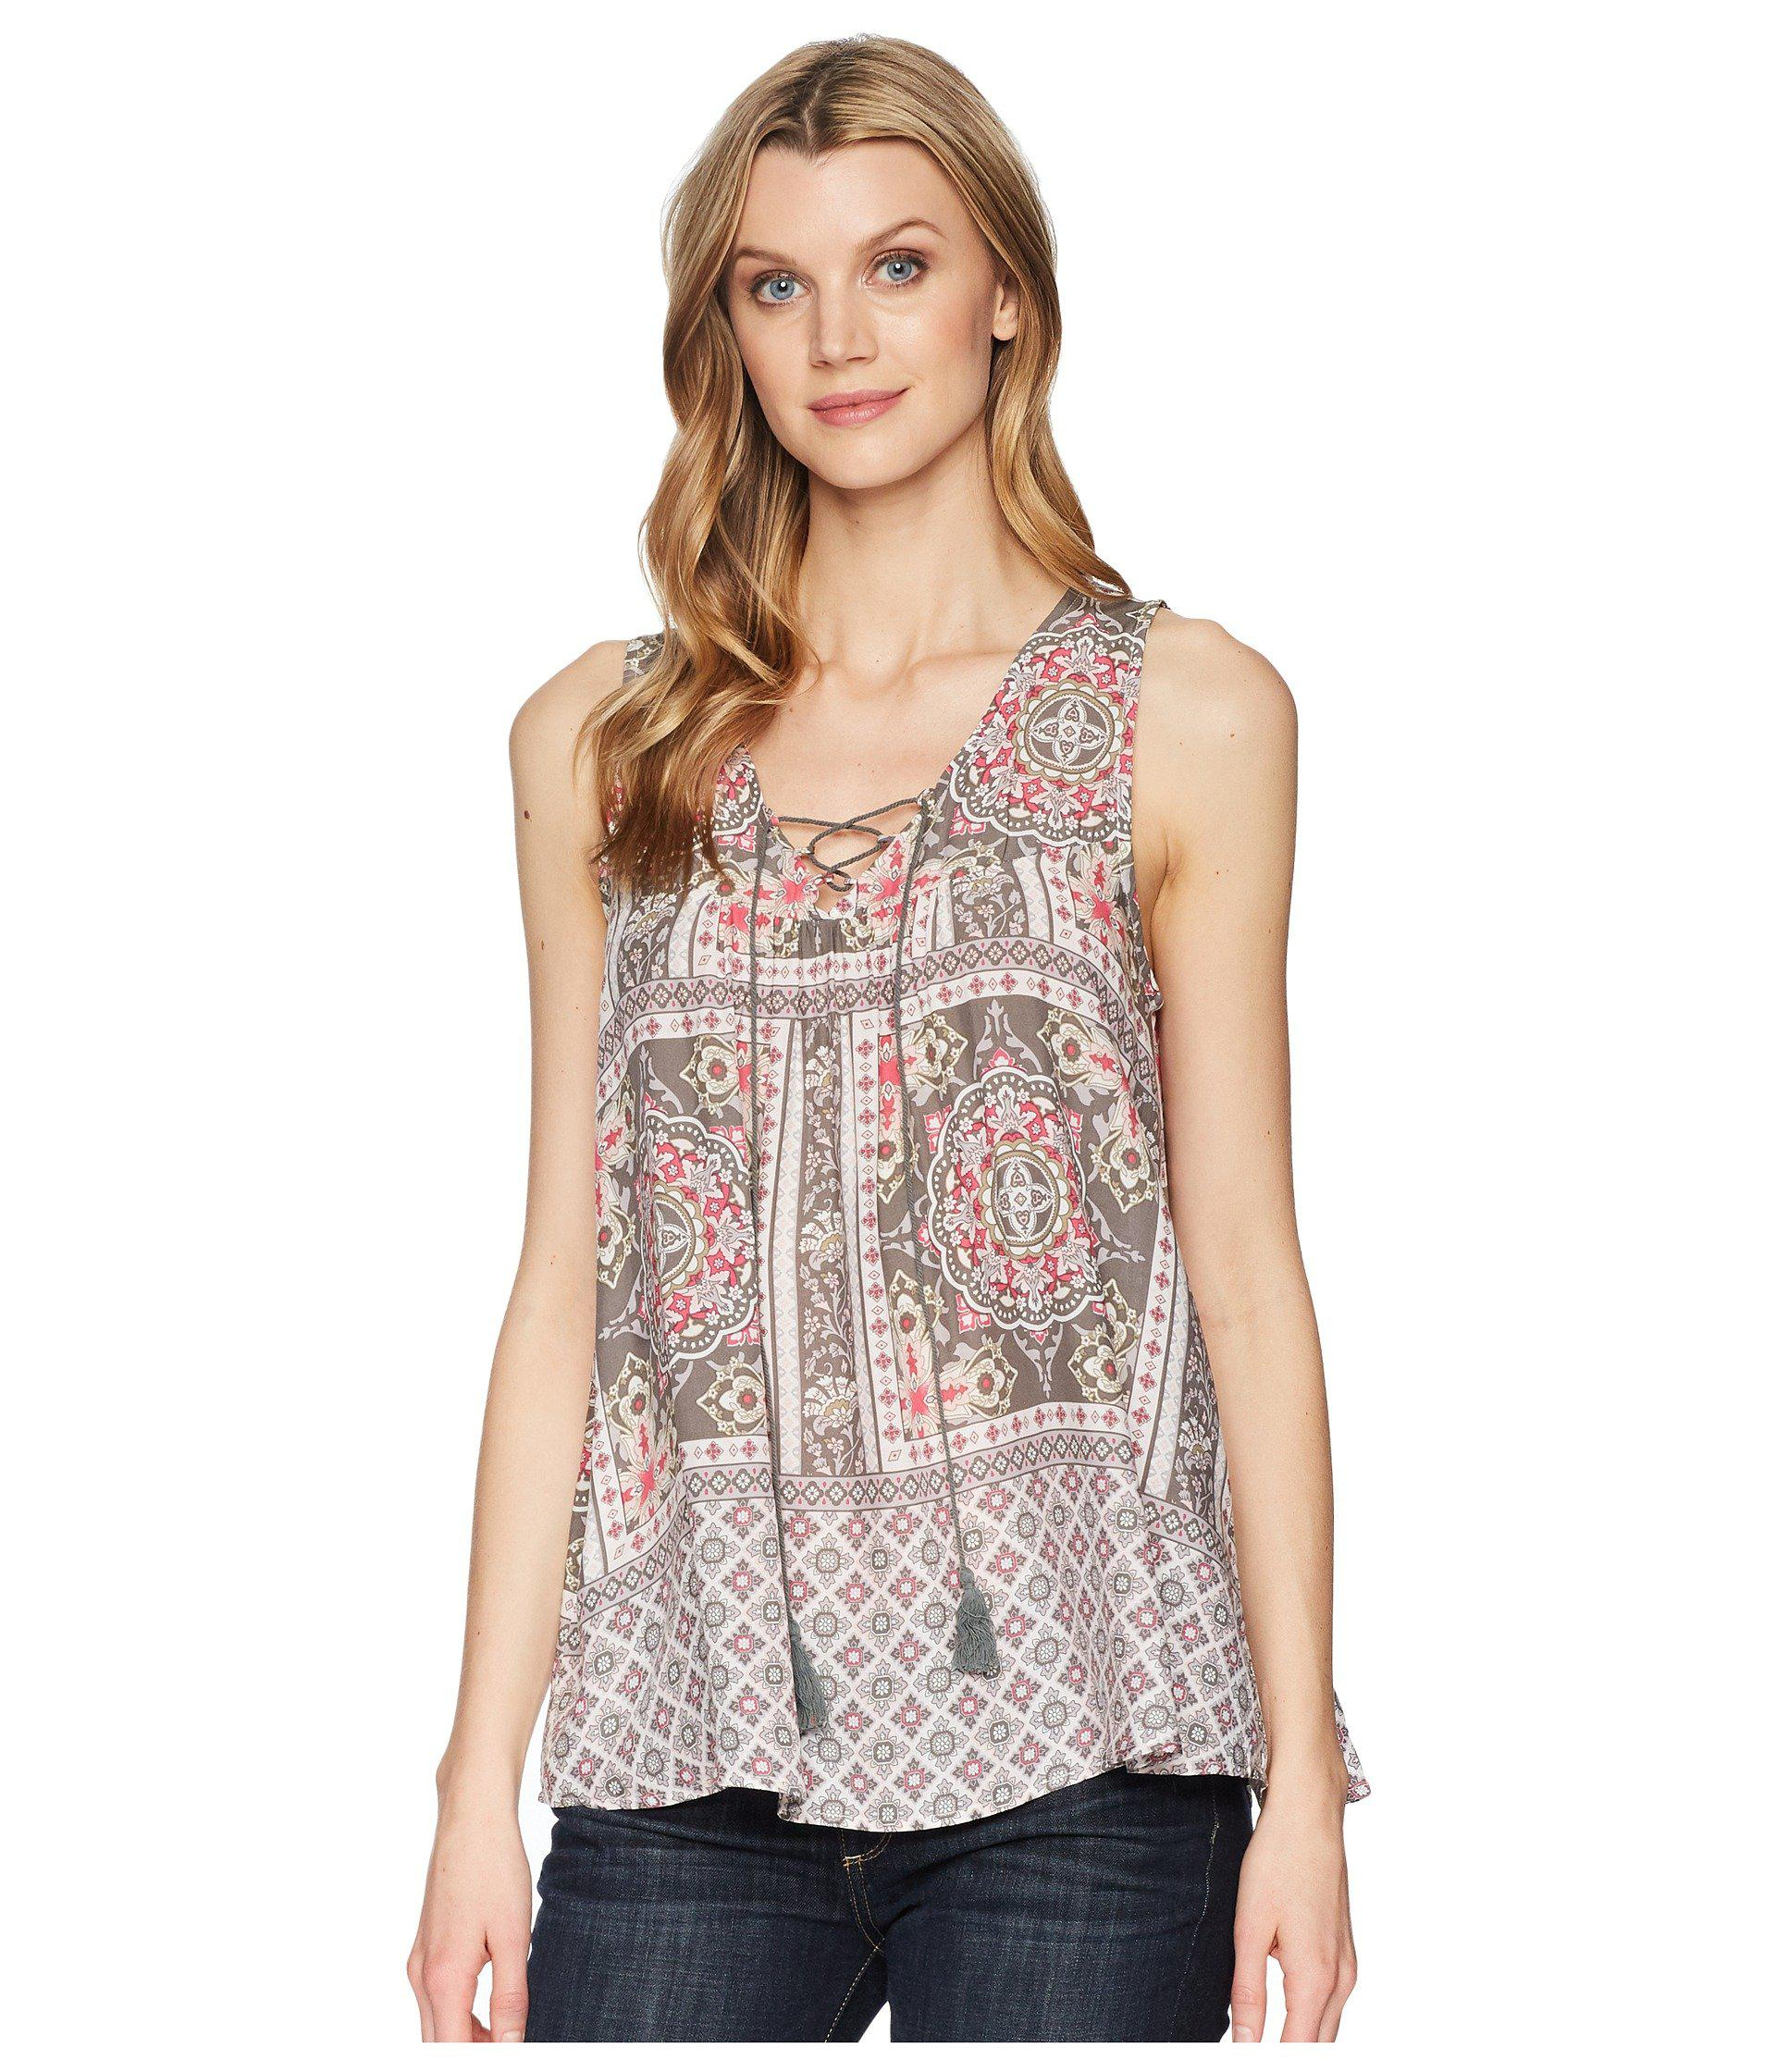 2adb55f8d0043 Lyst - Roper 1574 Sleeveless Scarf Print Peasant Top in Pink - Save 38%